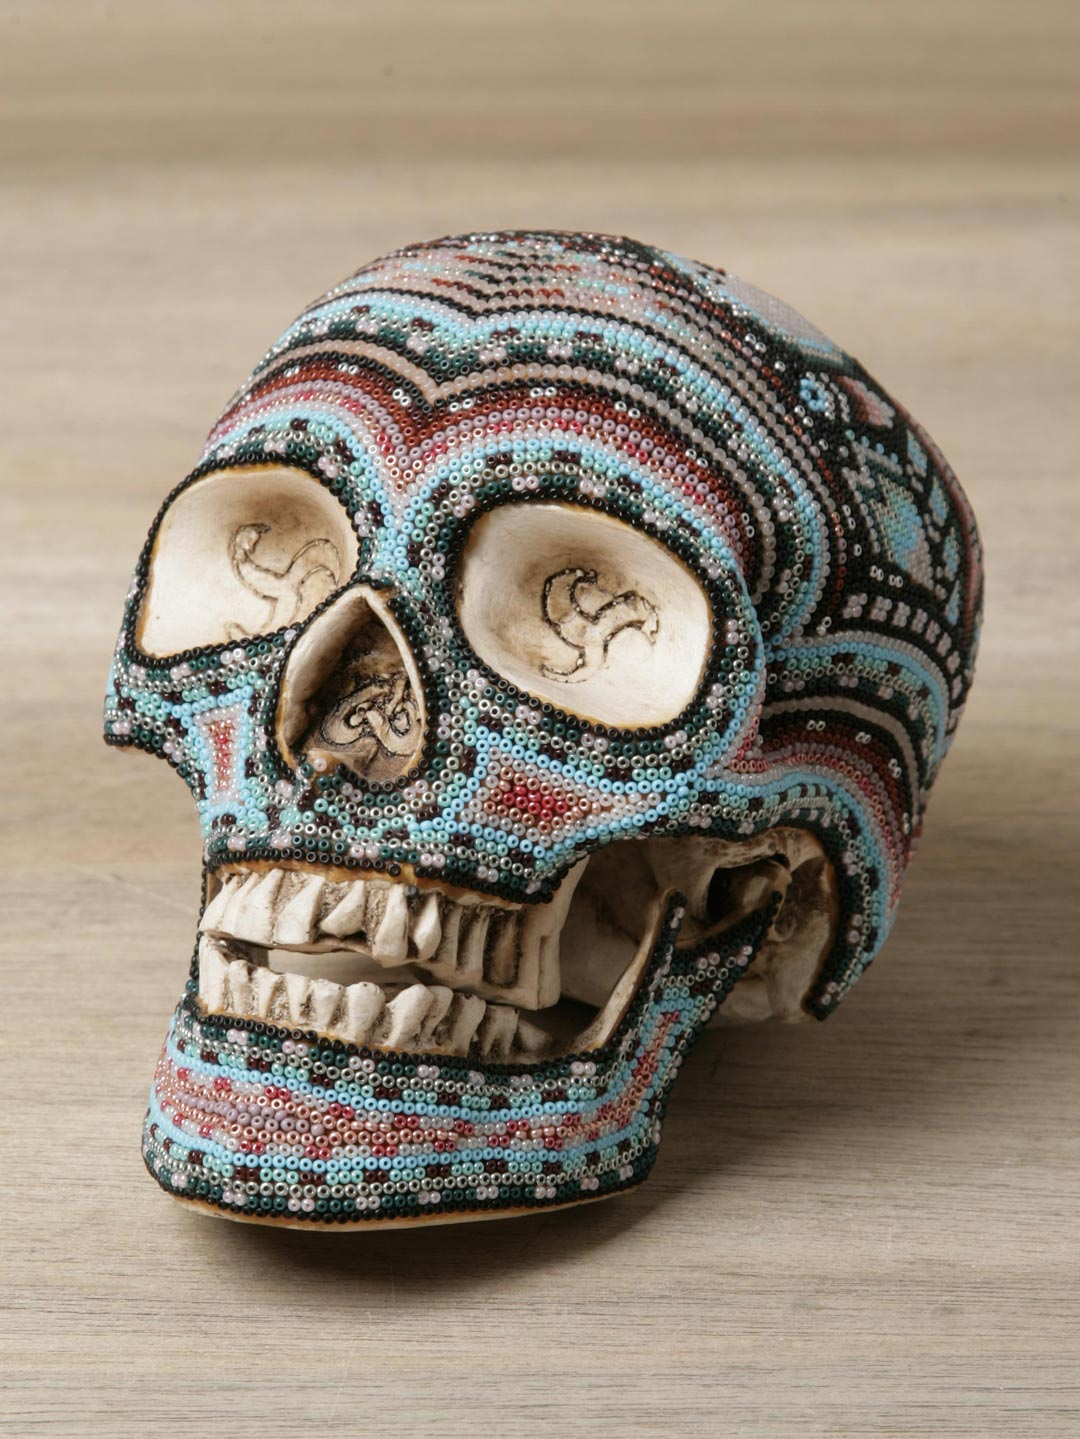 Beaded Skulls by Our Exquisite Corpse: our_exquisite_corpse_skulls_8_20111017_1979836222.jpg